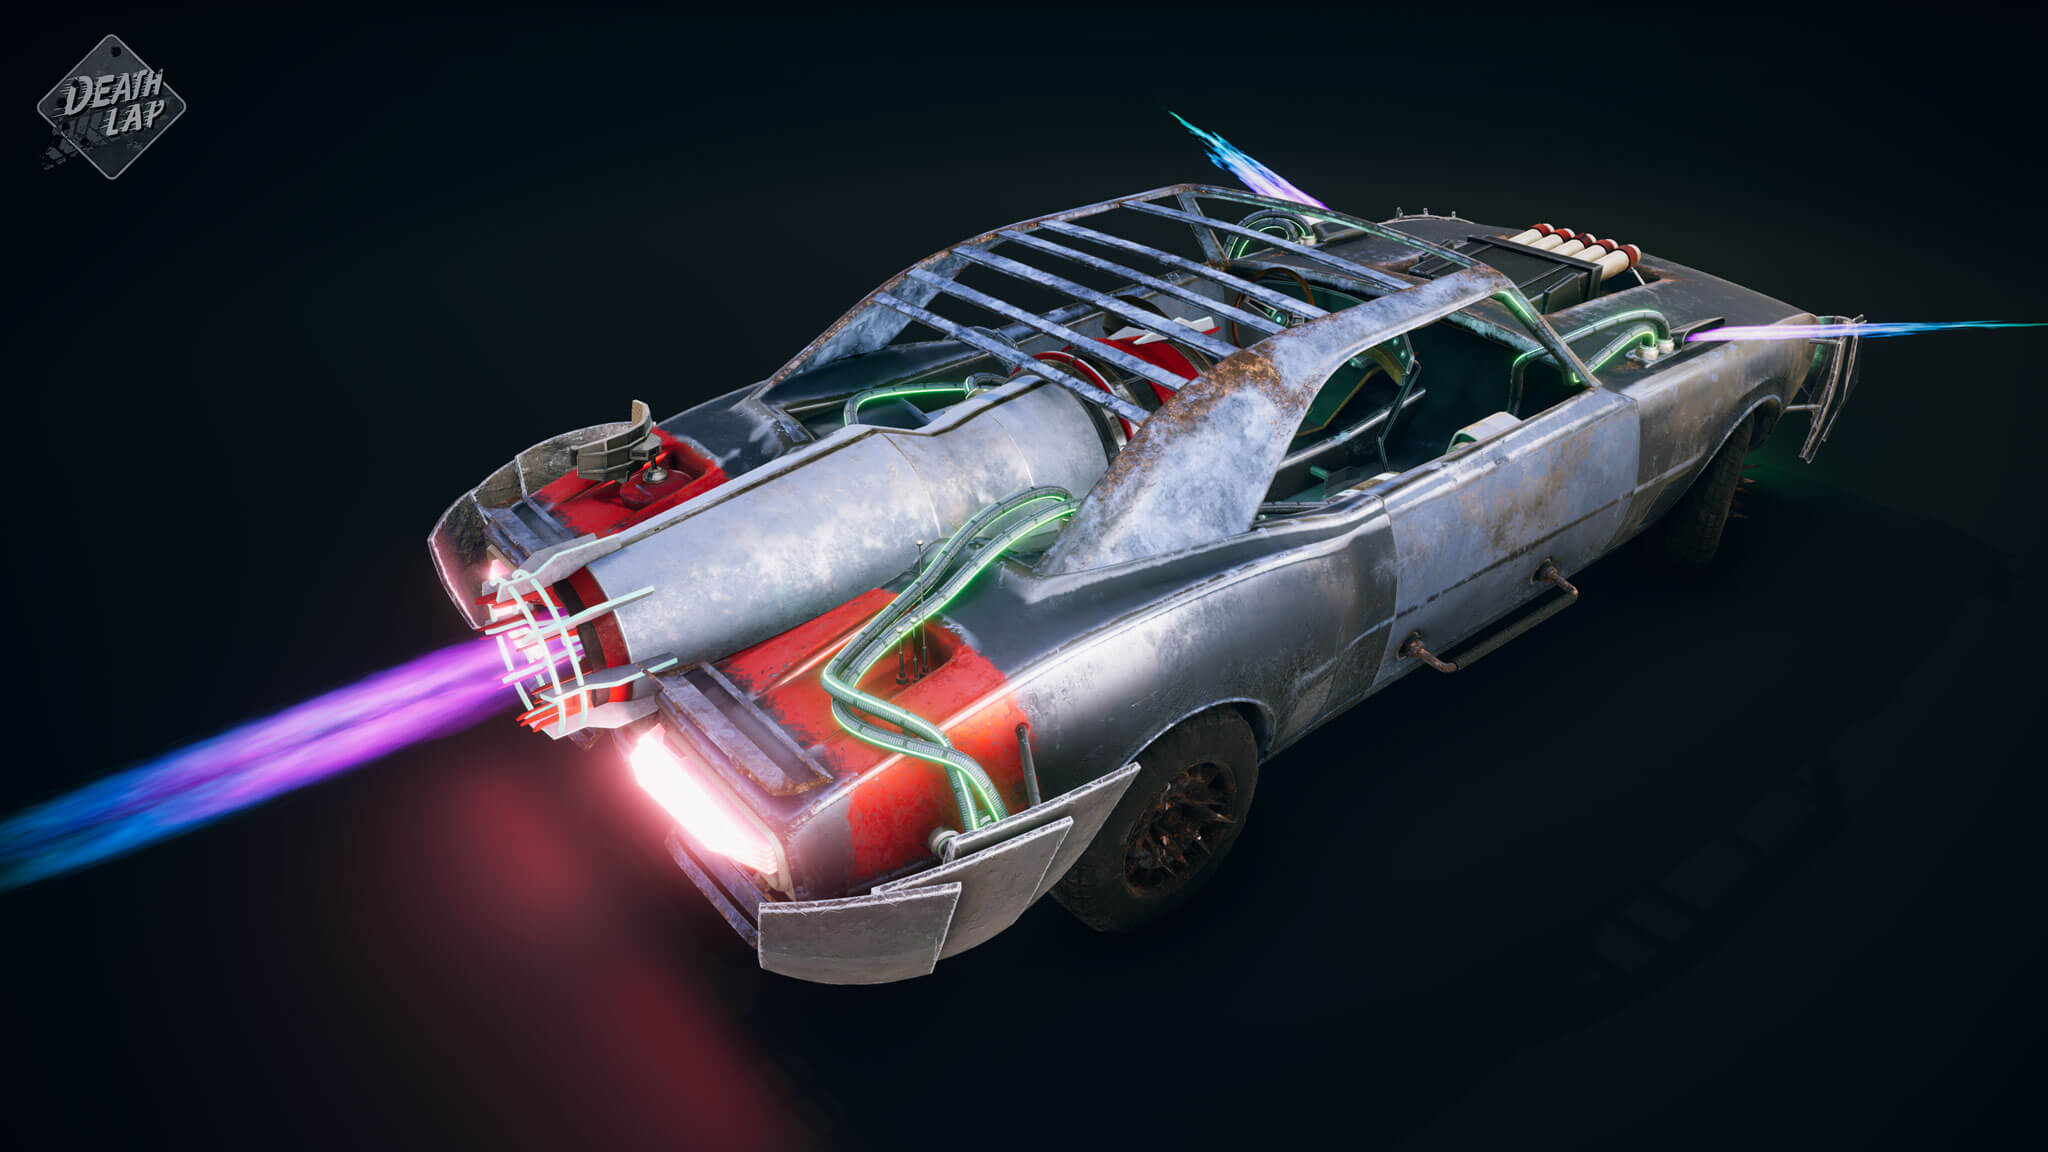 Death Lap Cars: The Phoenix